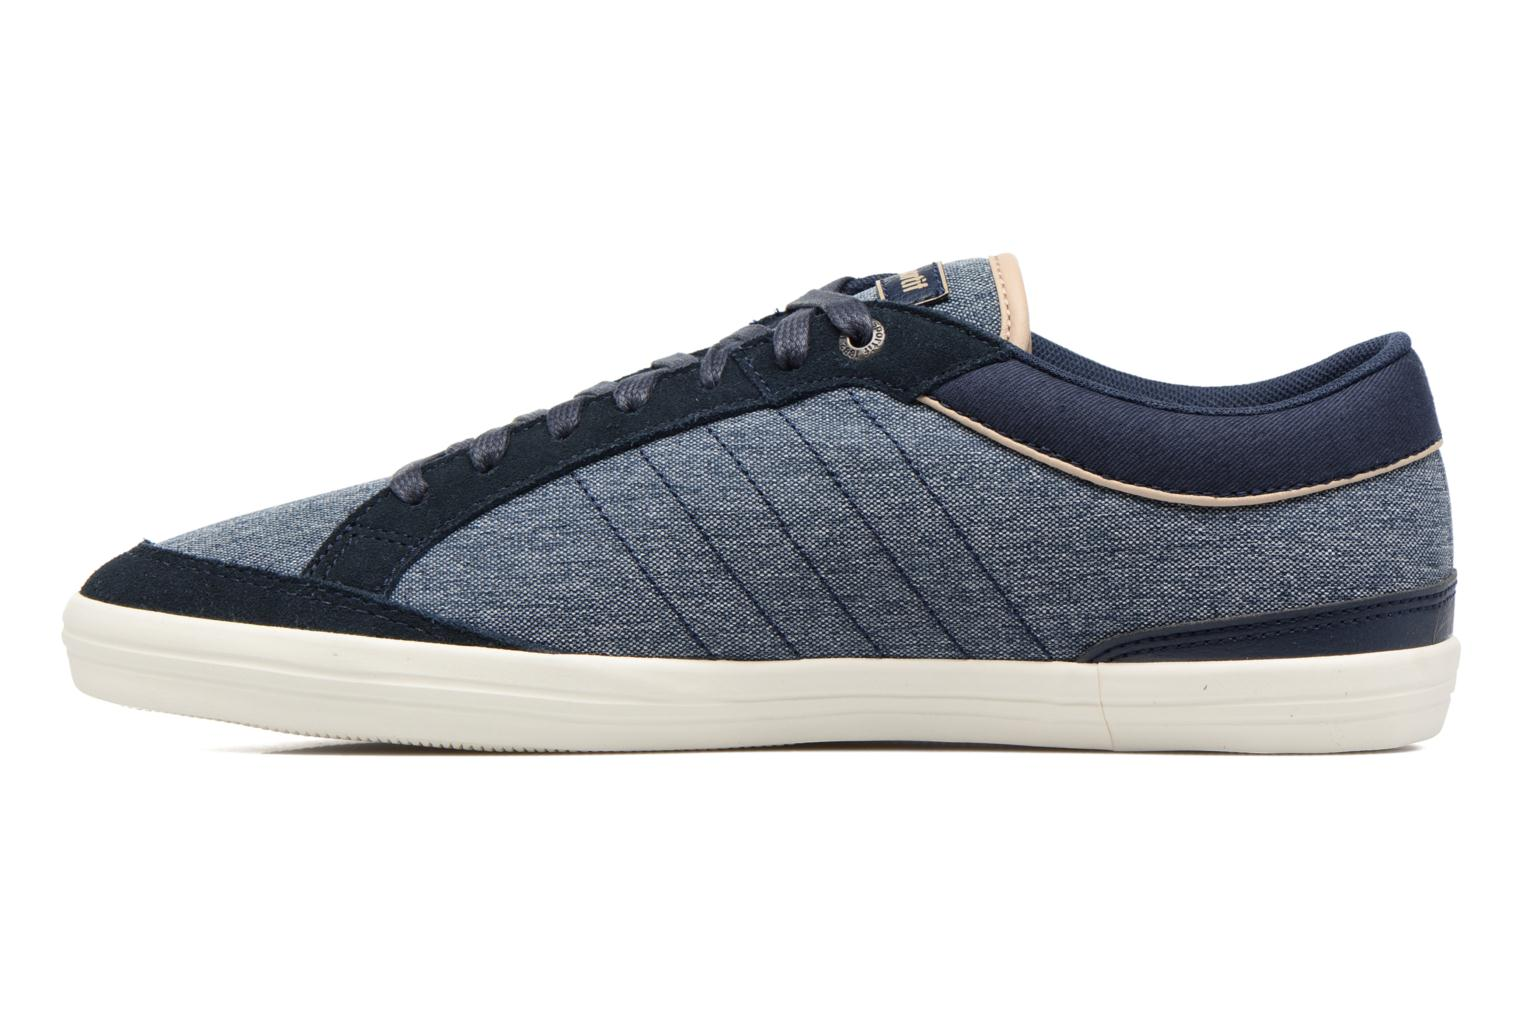 Feretcraft 2Tones/Suede Dress Blue/Sesame